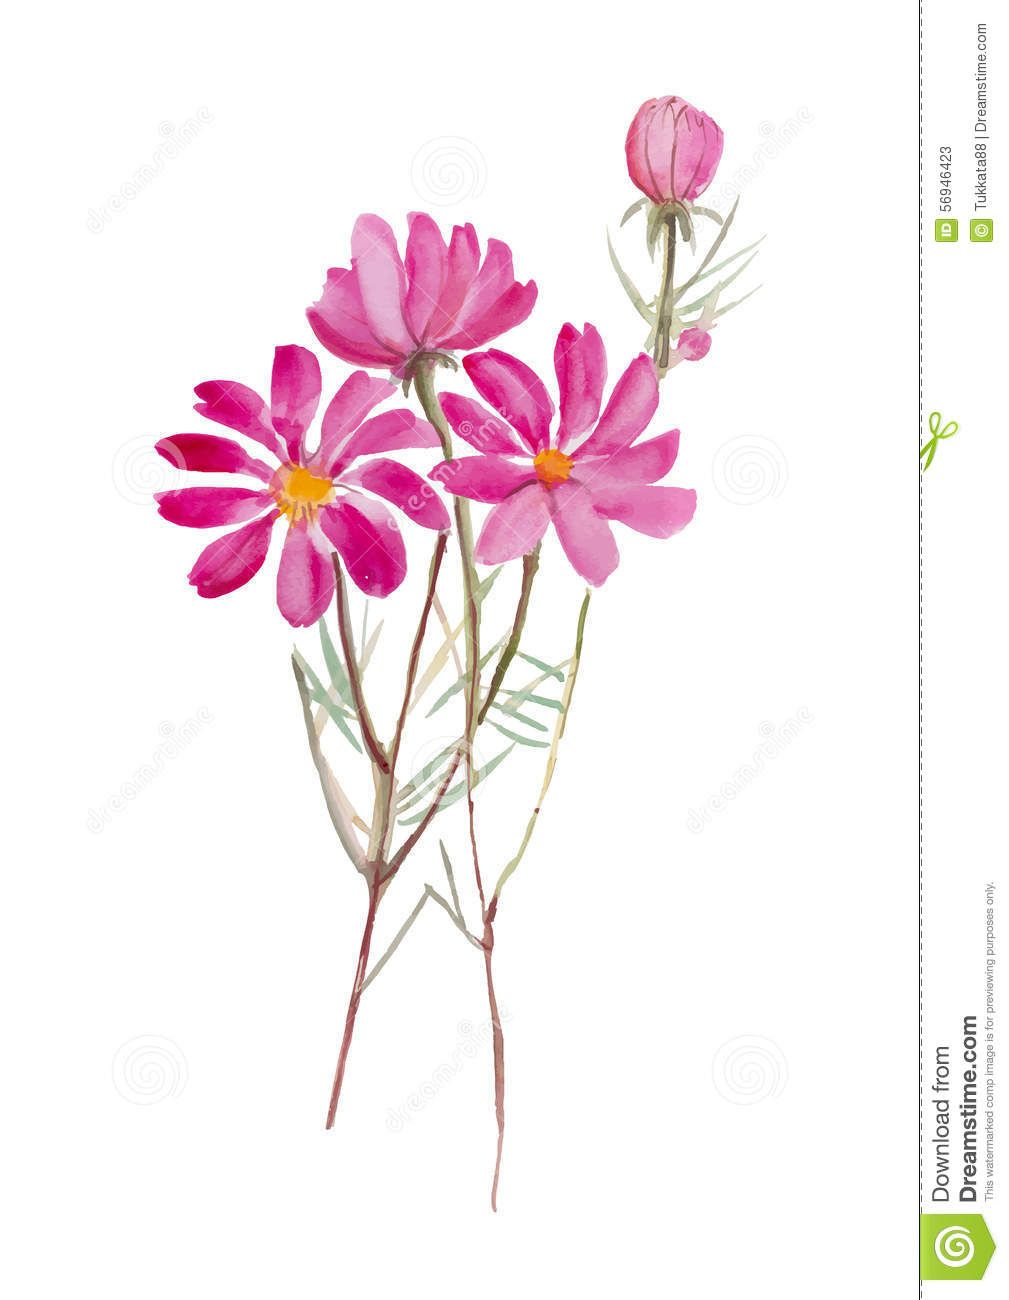 Cosmos Flower Hand Drawn Watercolor Painting On White Background W Watercolor Flower Flowers Water Flower Painting Watercolor Flowers Watercolor Paintings